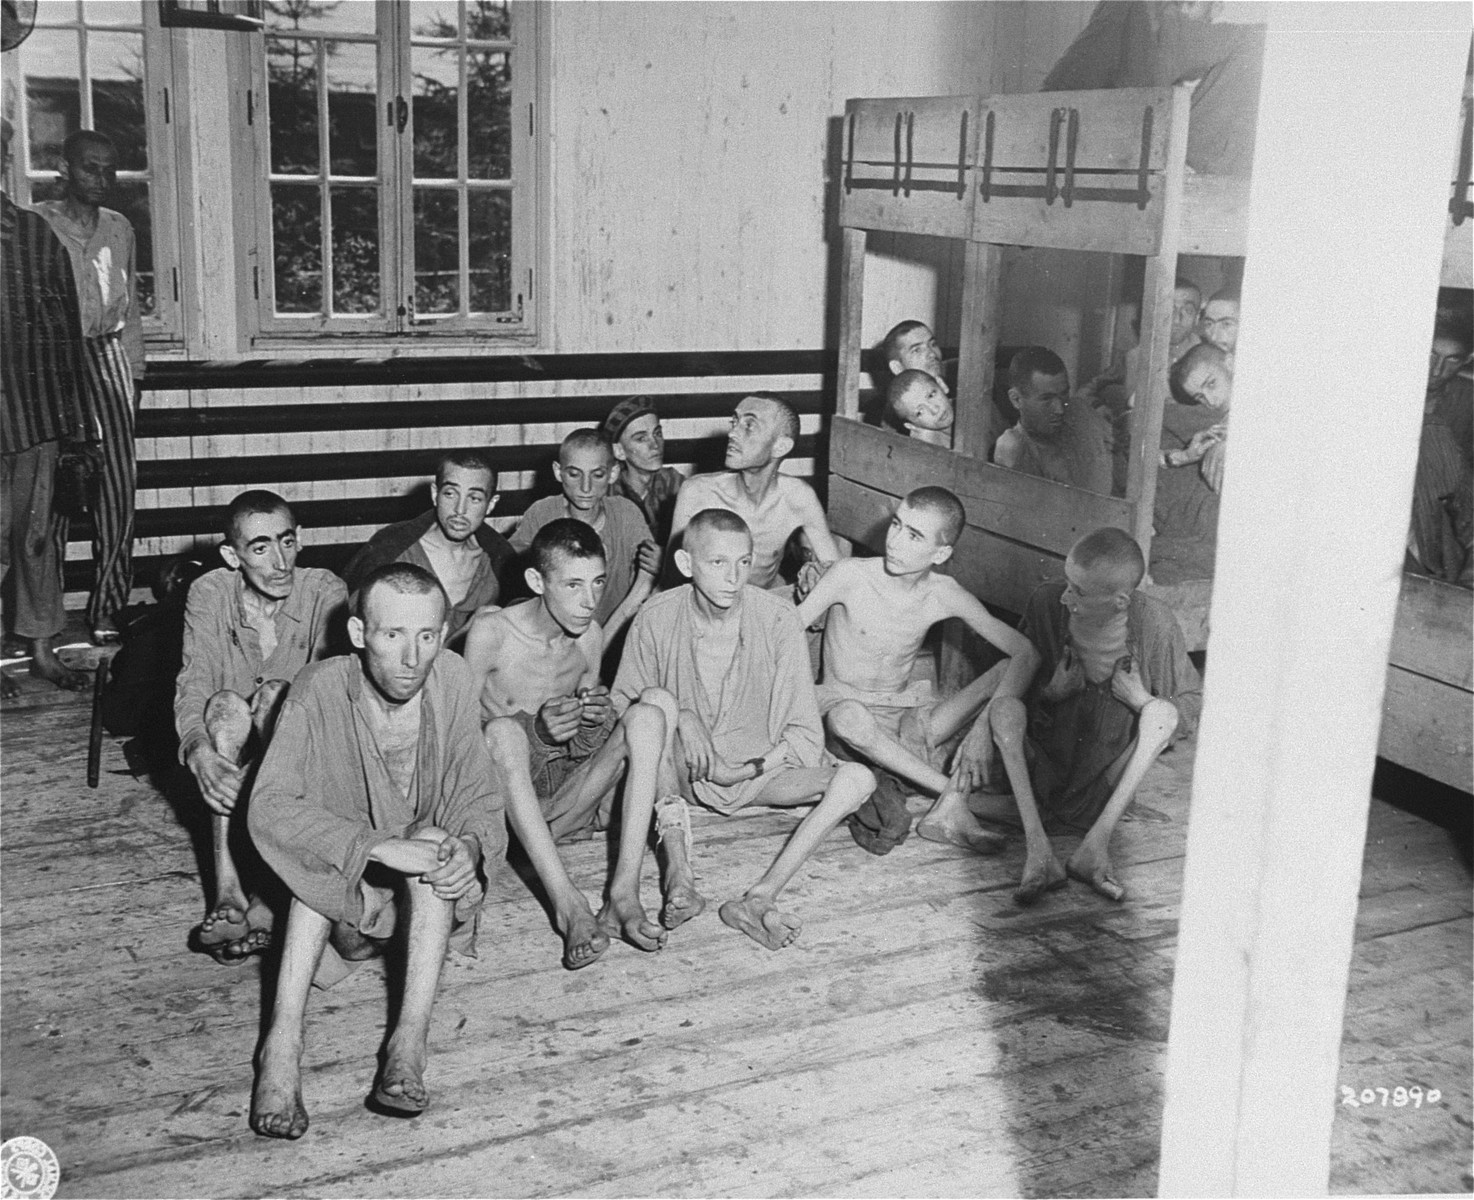 A group of emaciated survivors in the infirmary barracks for Jewish prisoners in the Ebensee concentration camp.  Among those pictured is George Havas (front row, second from the right).